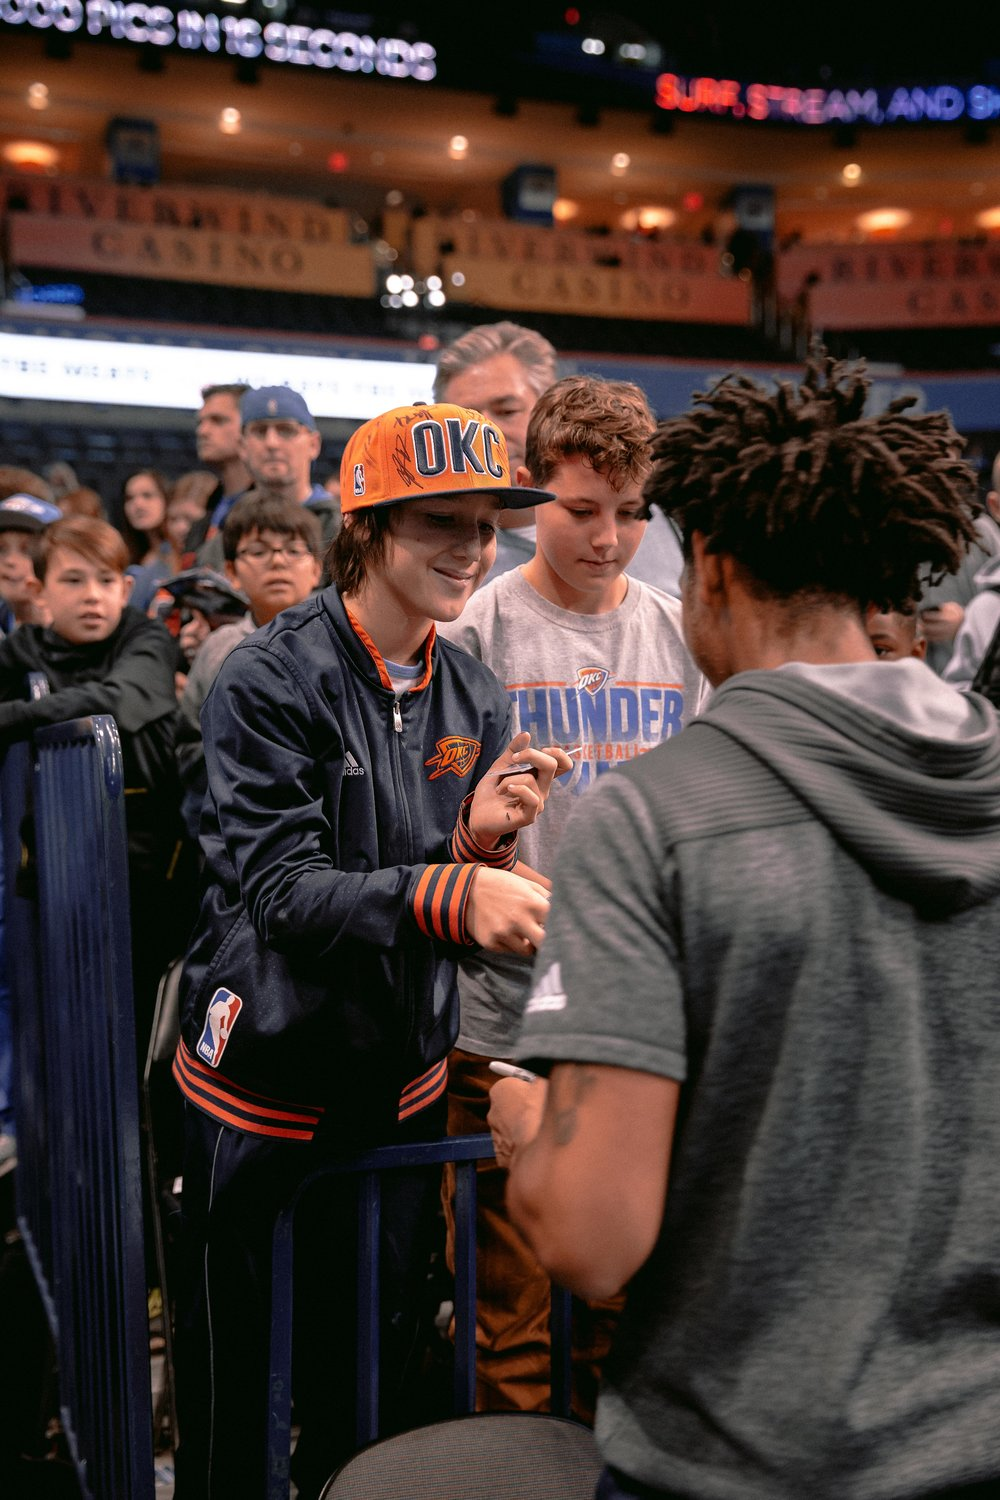 jonathanburkhart,photographer,oklahoma,city,bleacherreport,editorial,charlie,okc,thunder,basketball12.jpg